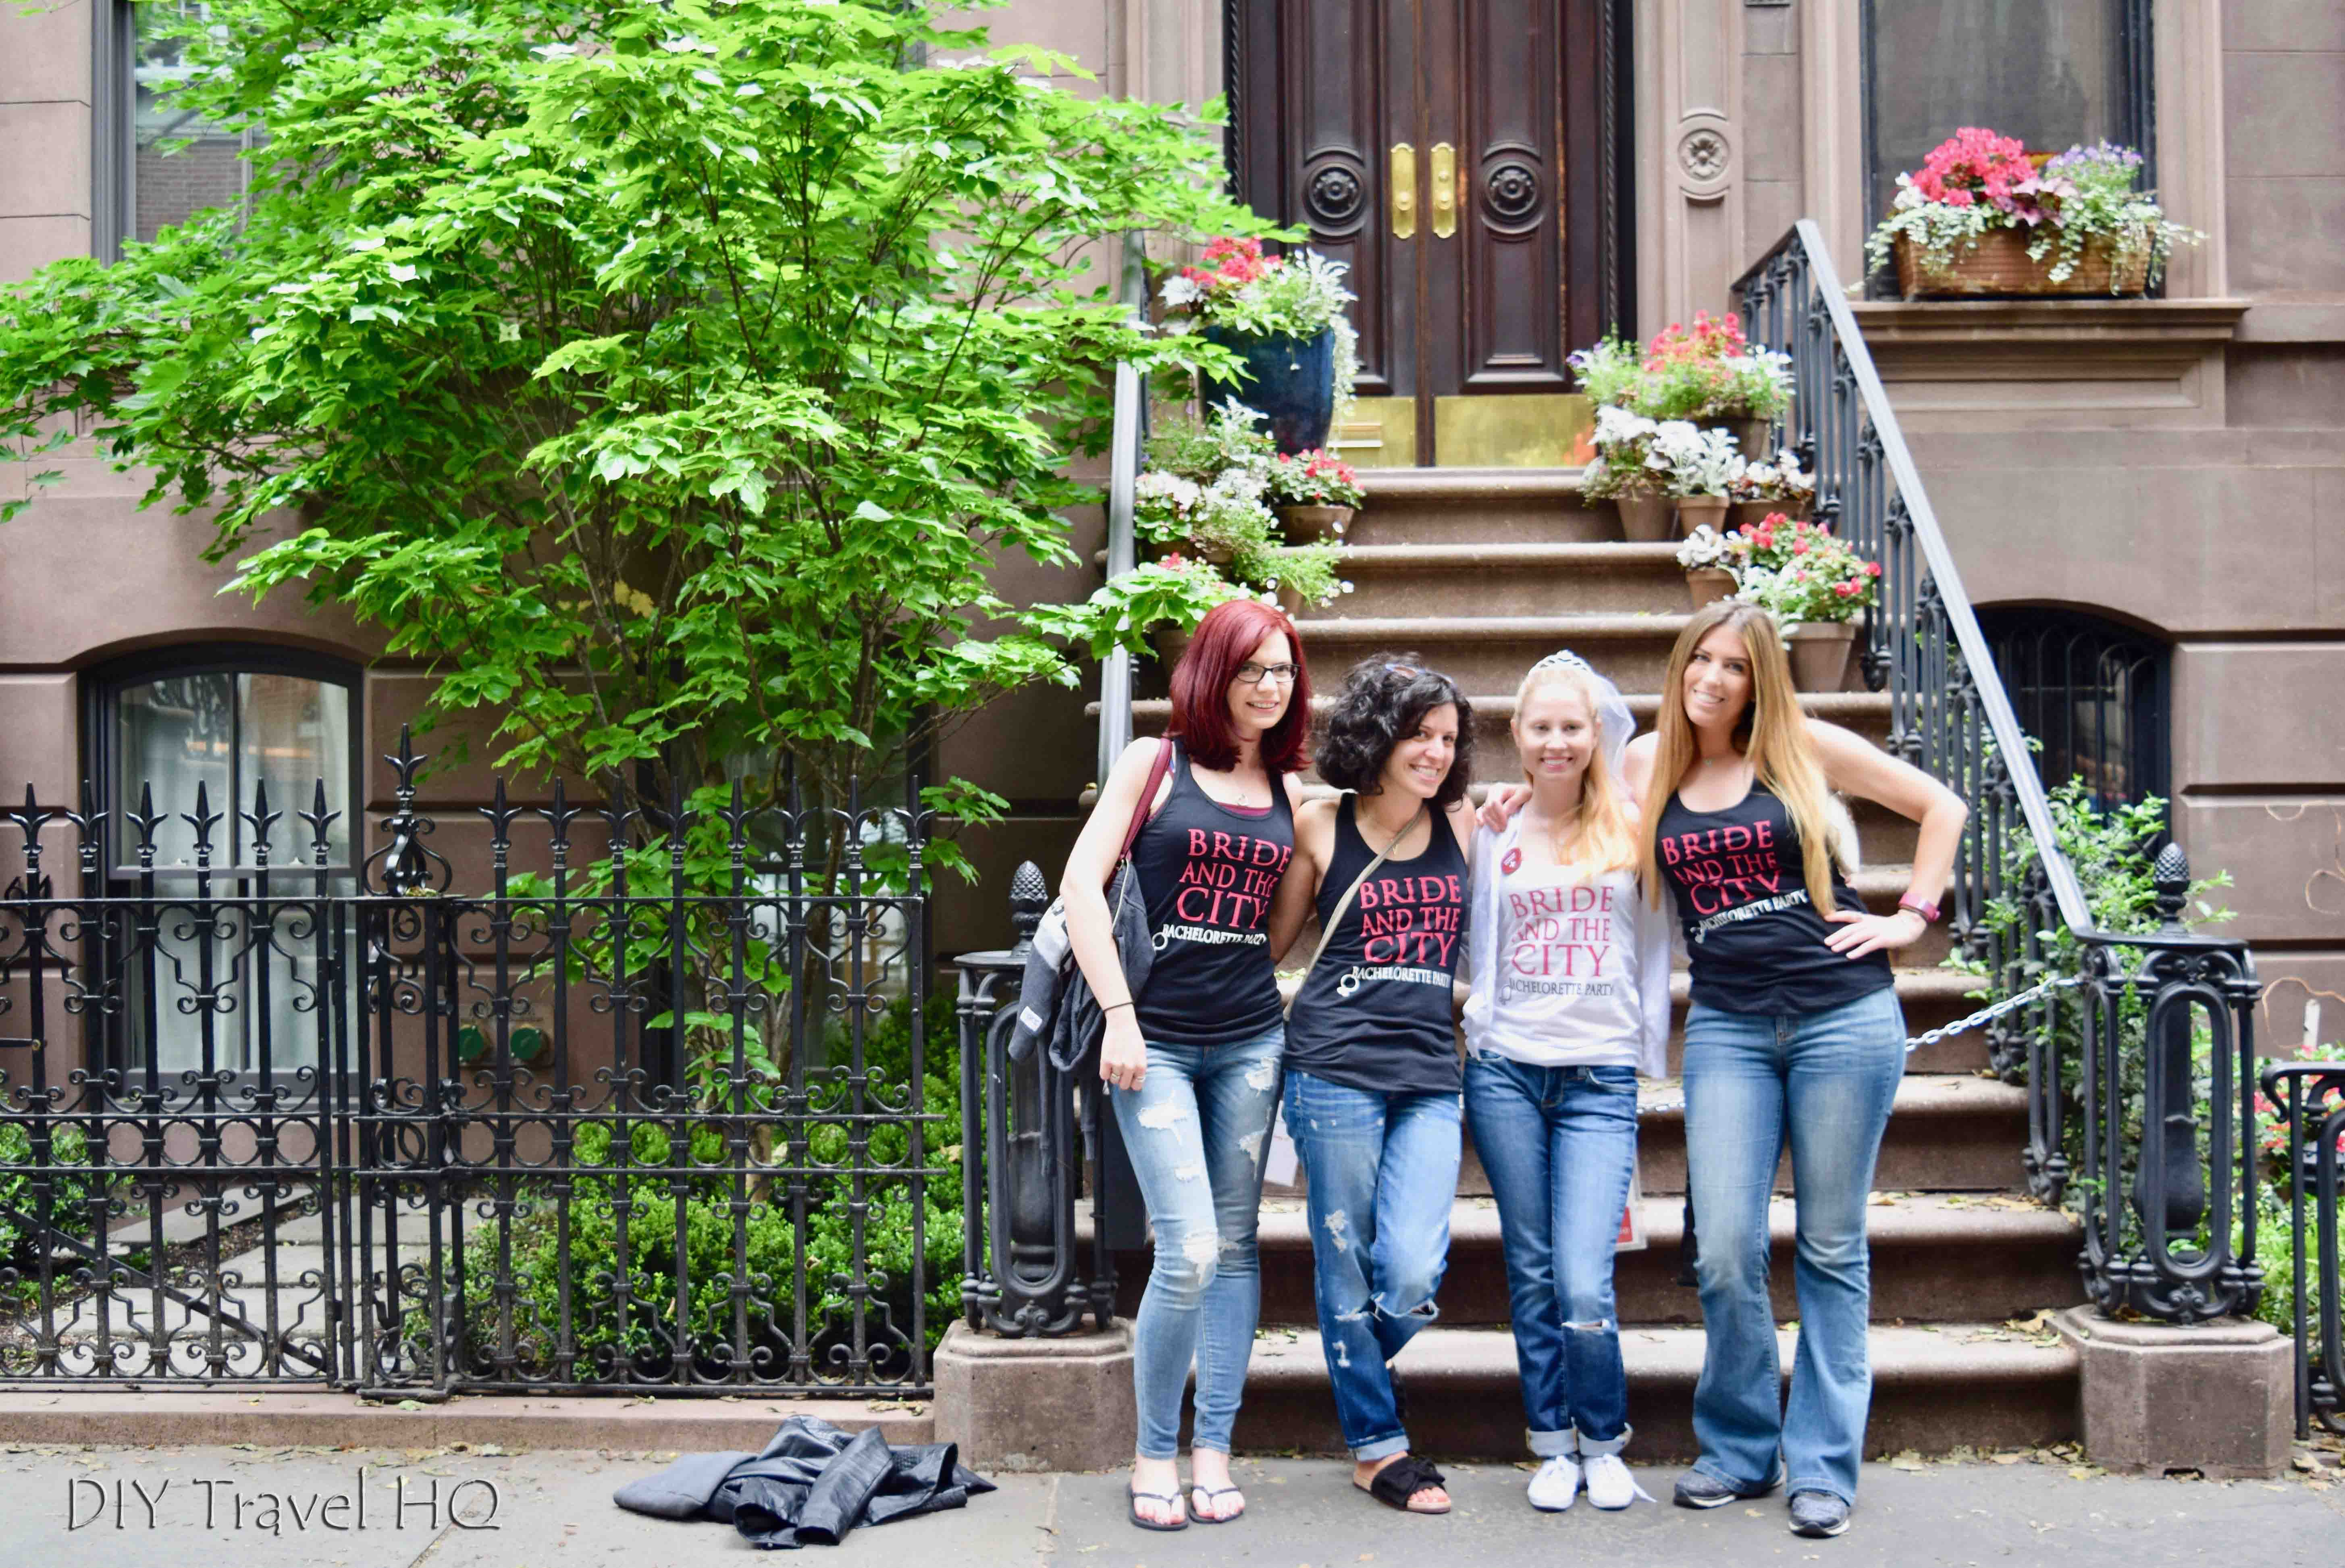 @diytravelhq's cover photo for 'On Location Tours: Sex & the City Hotspots - DIY Travel HQ'